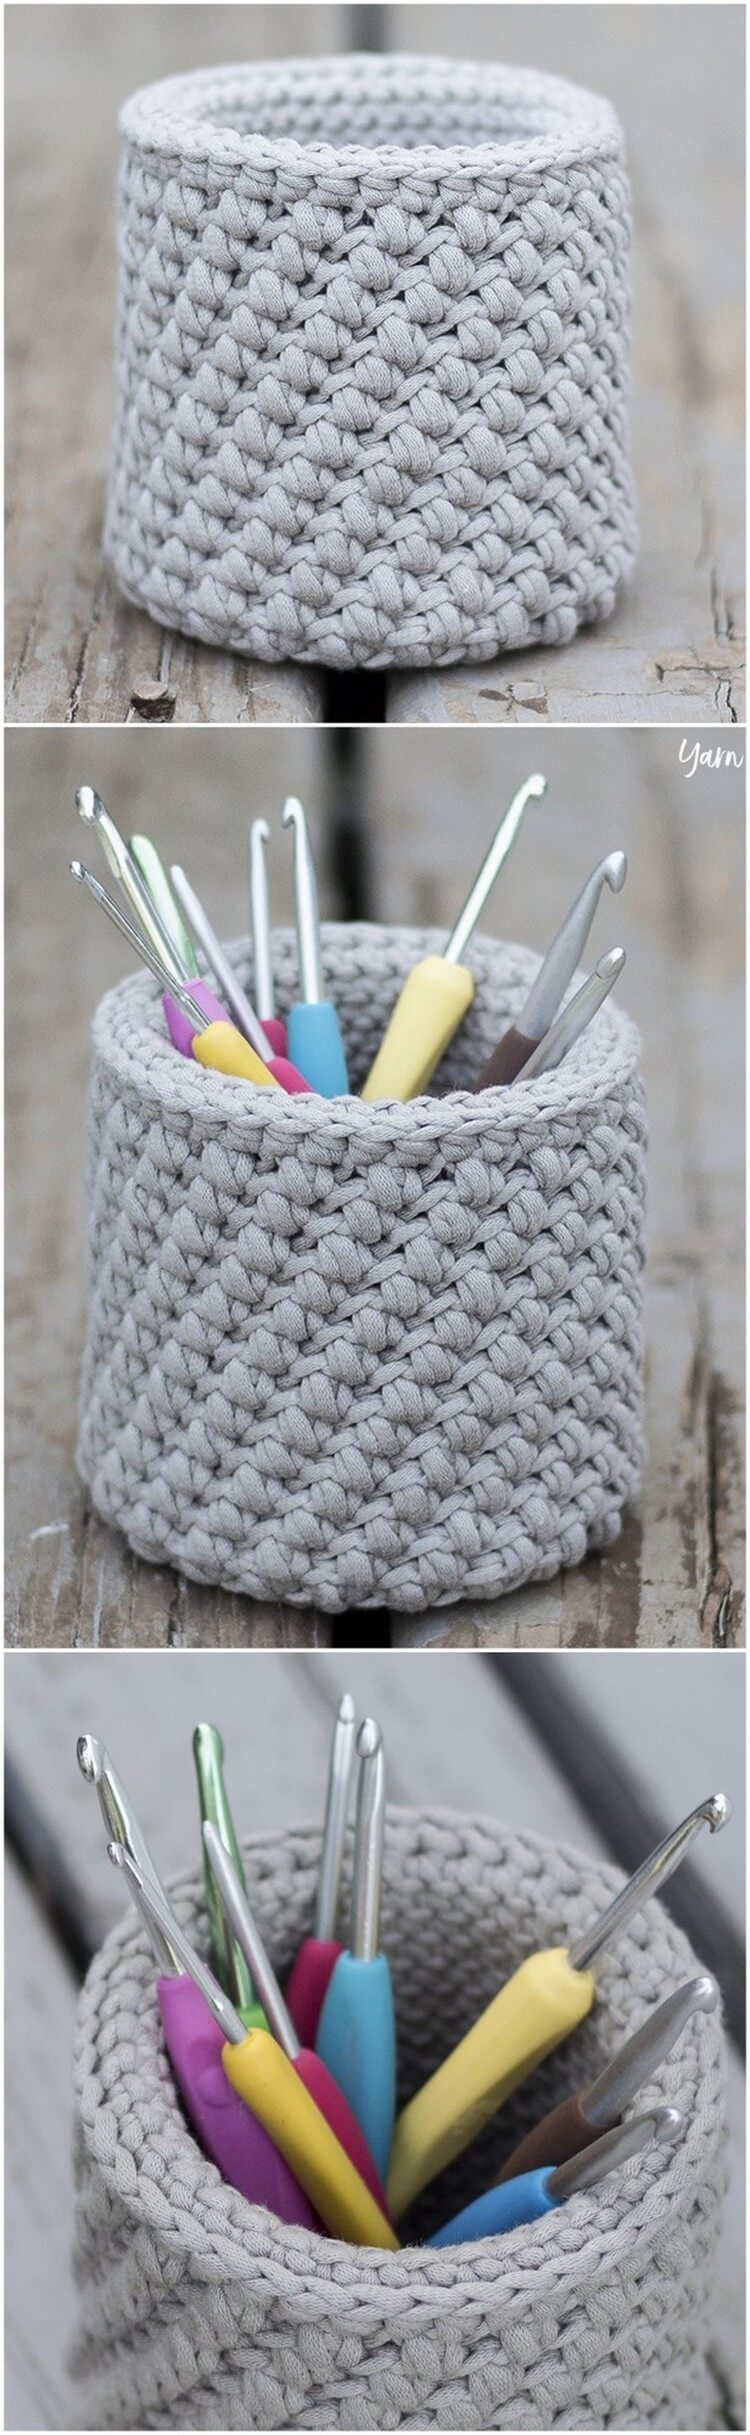 Crochet Basket Pattern (22)